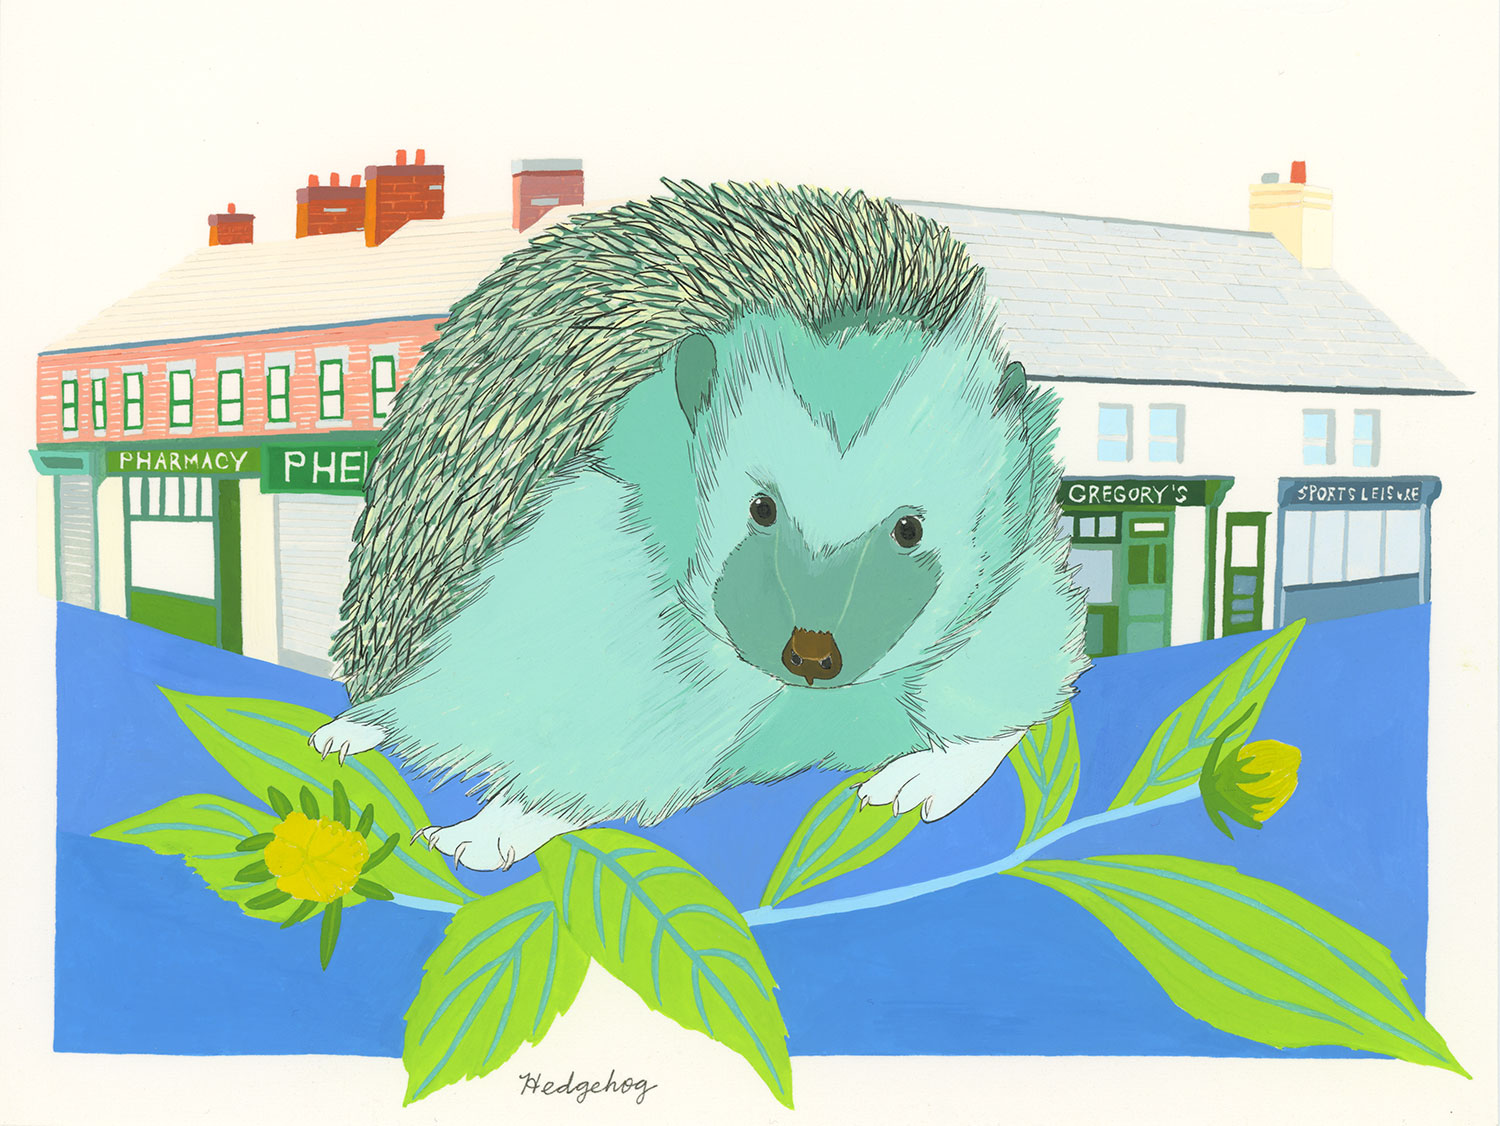 Hedgehog (for the one named Hoggy)